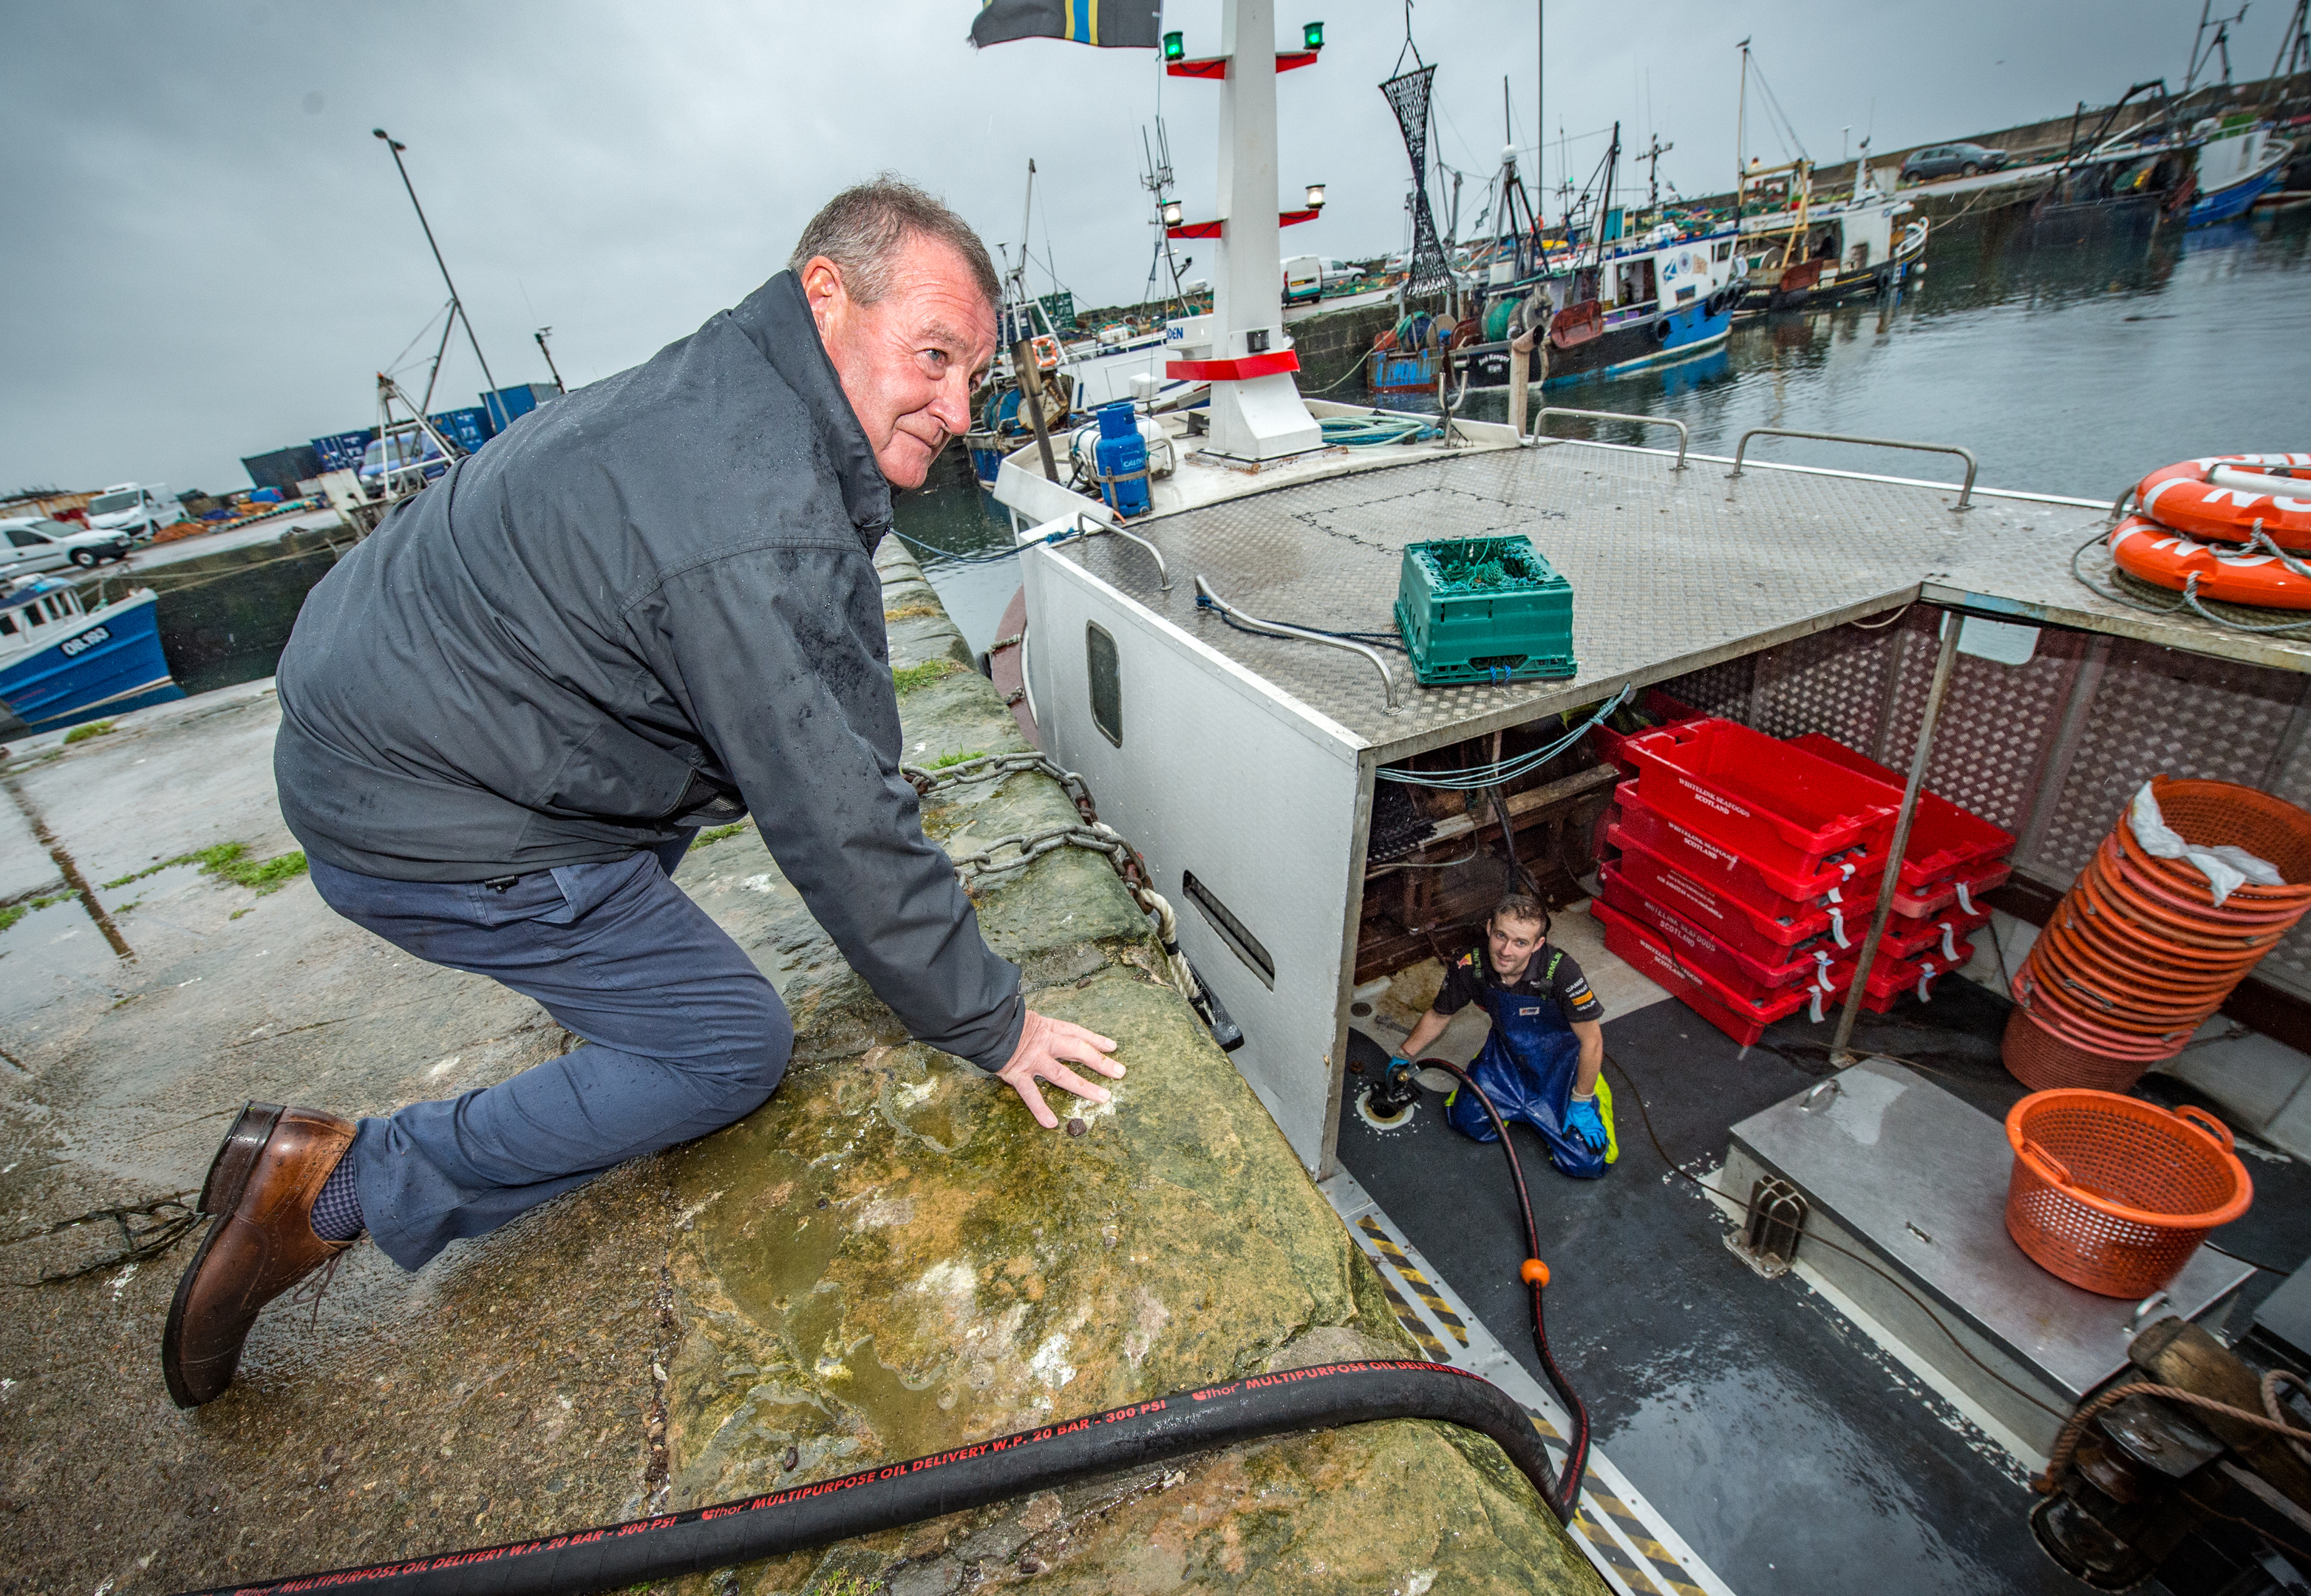 Hamish McPherson and a fisherman fuelling a boat.